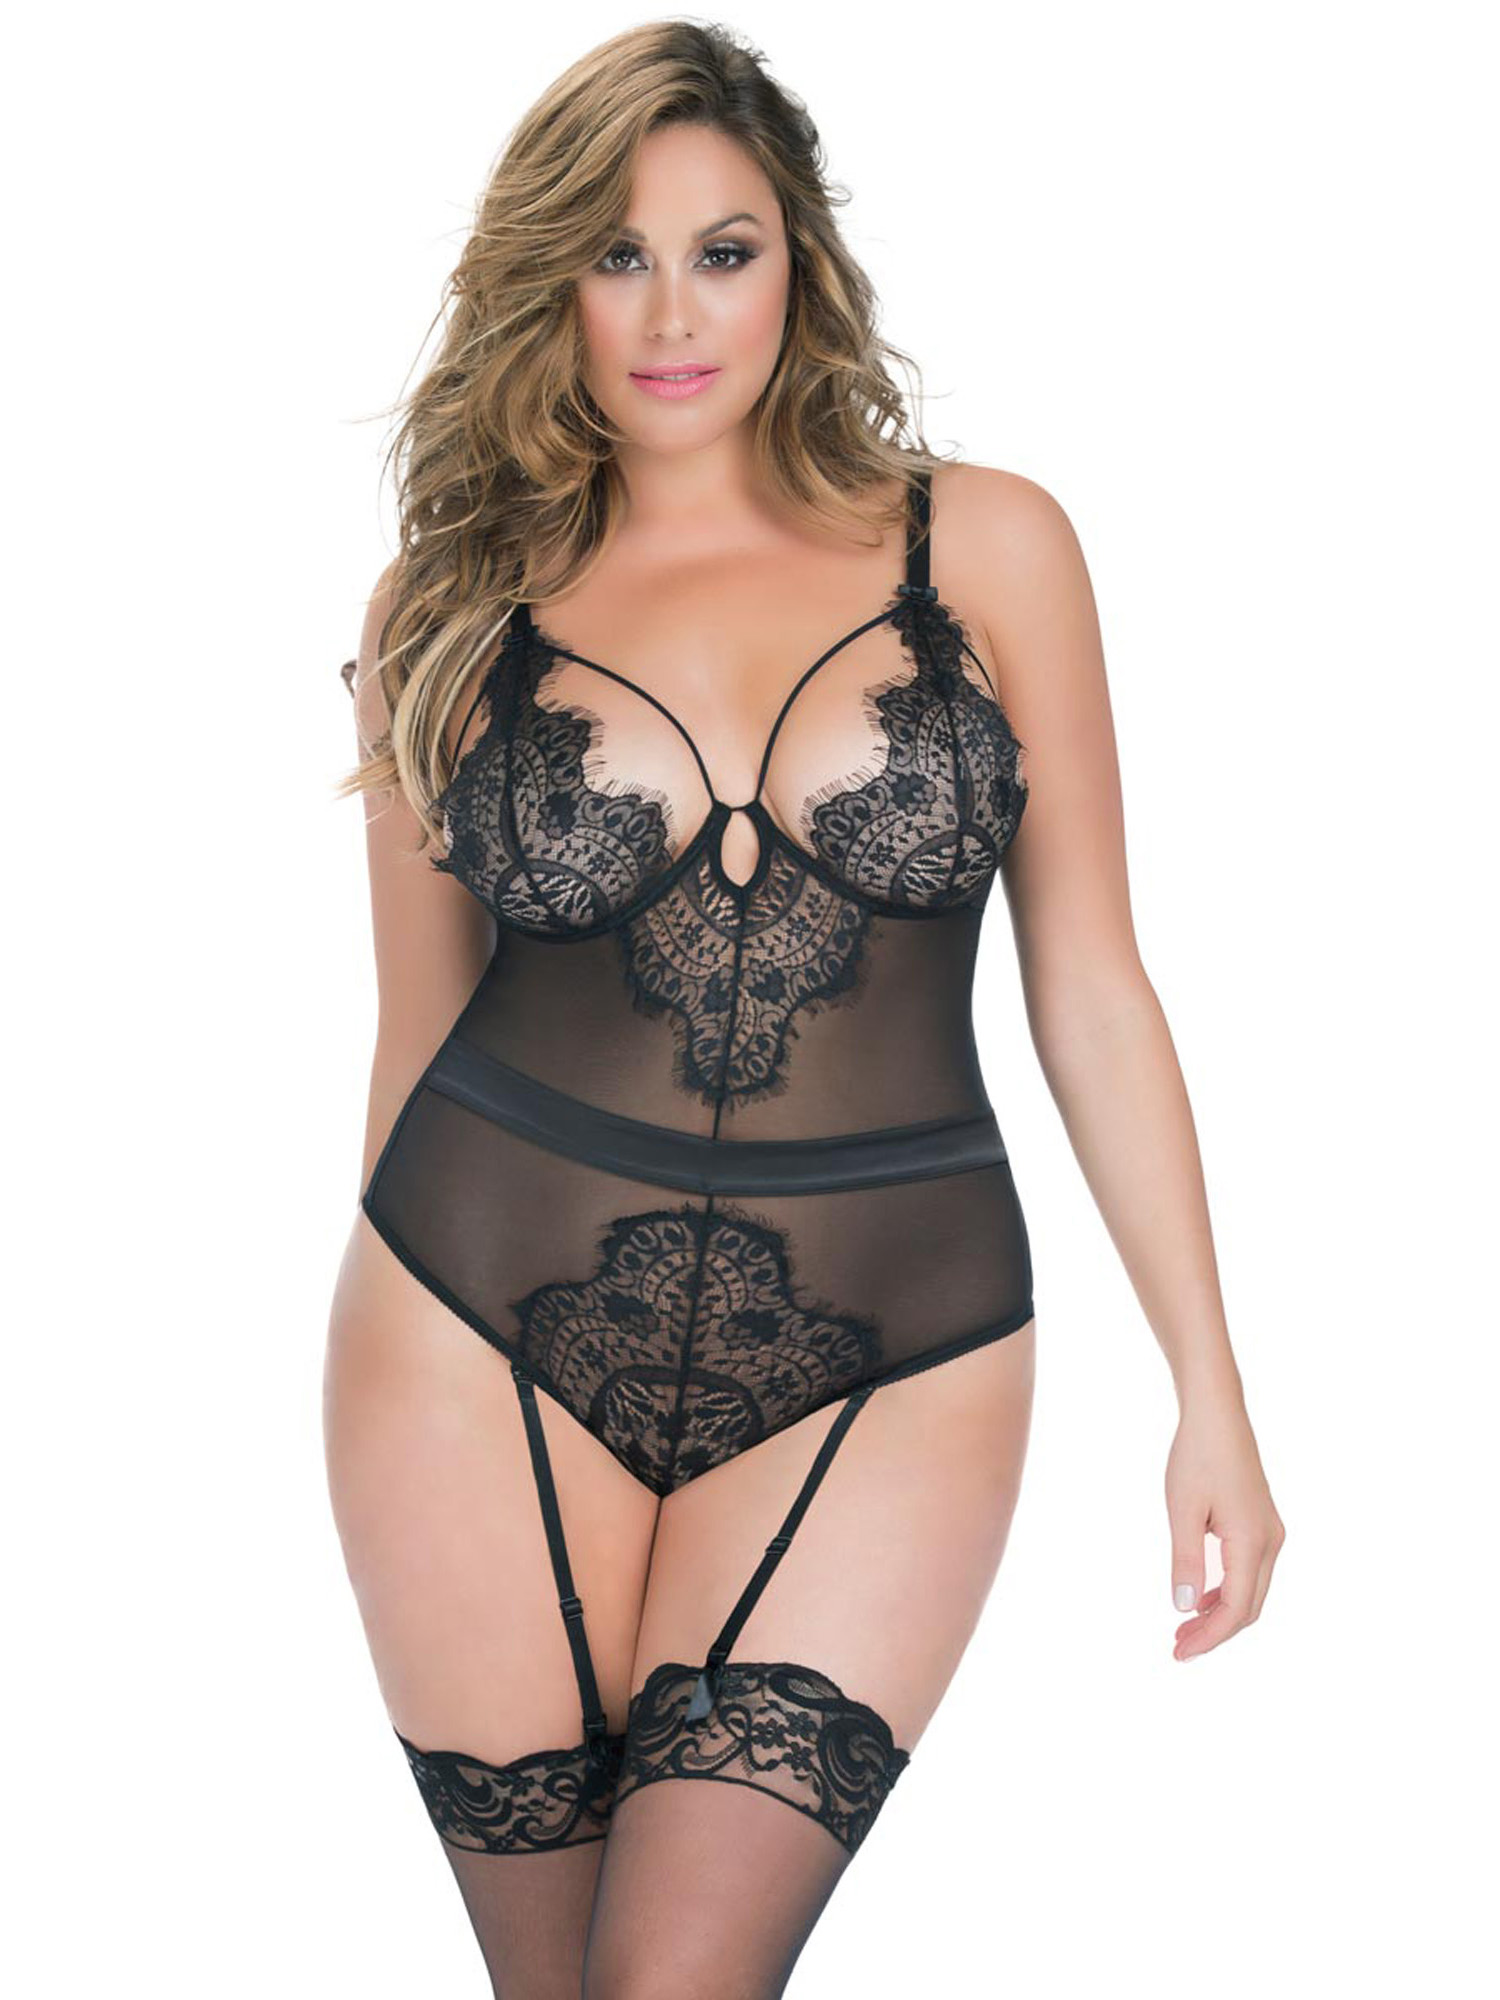 black large lingerie model